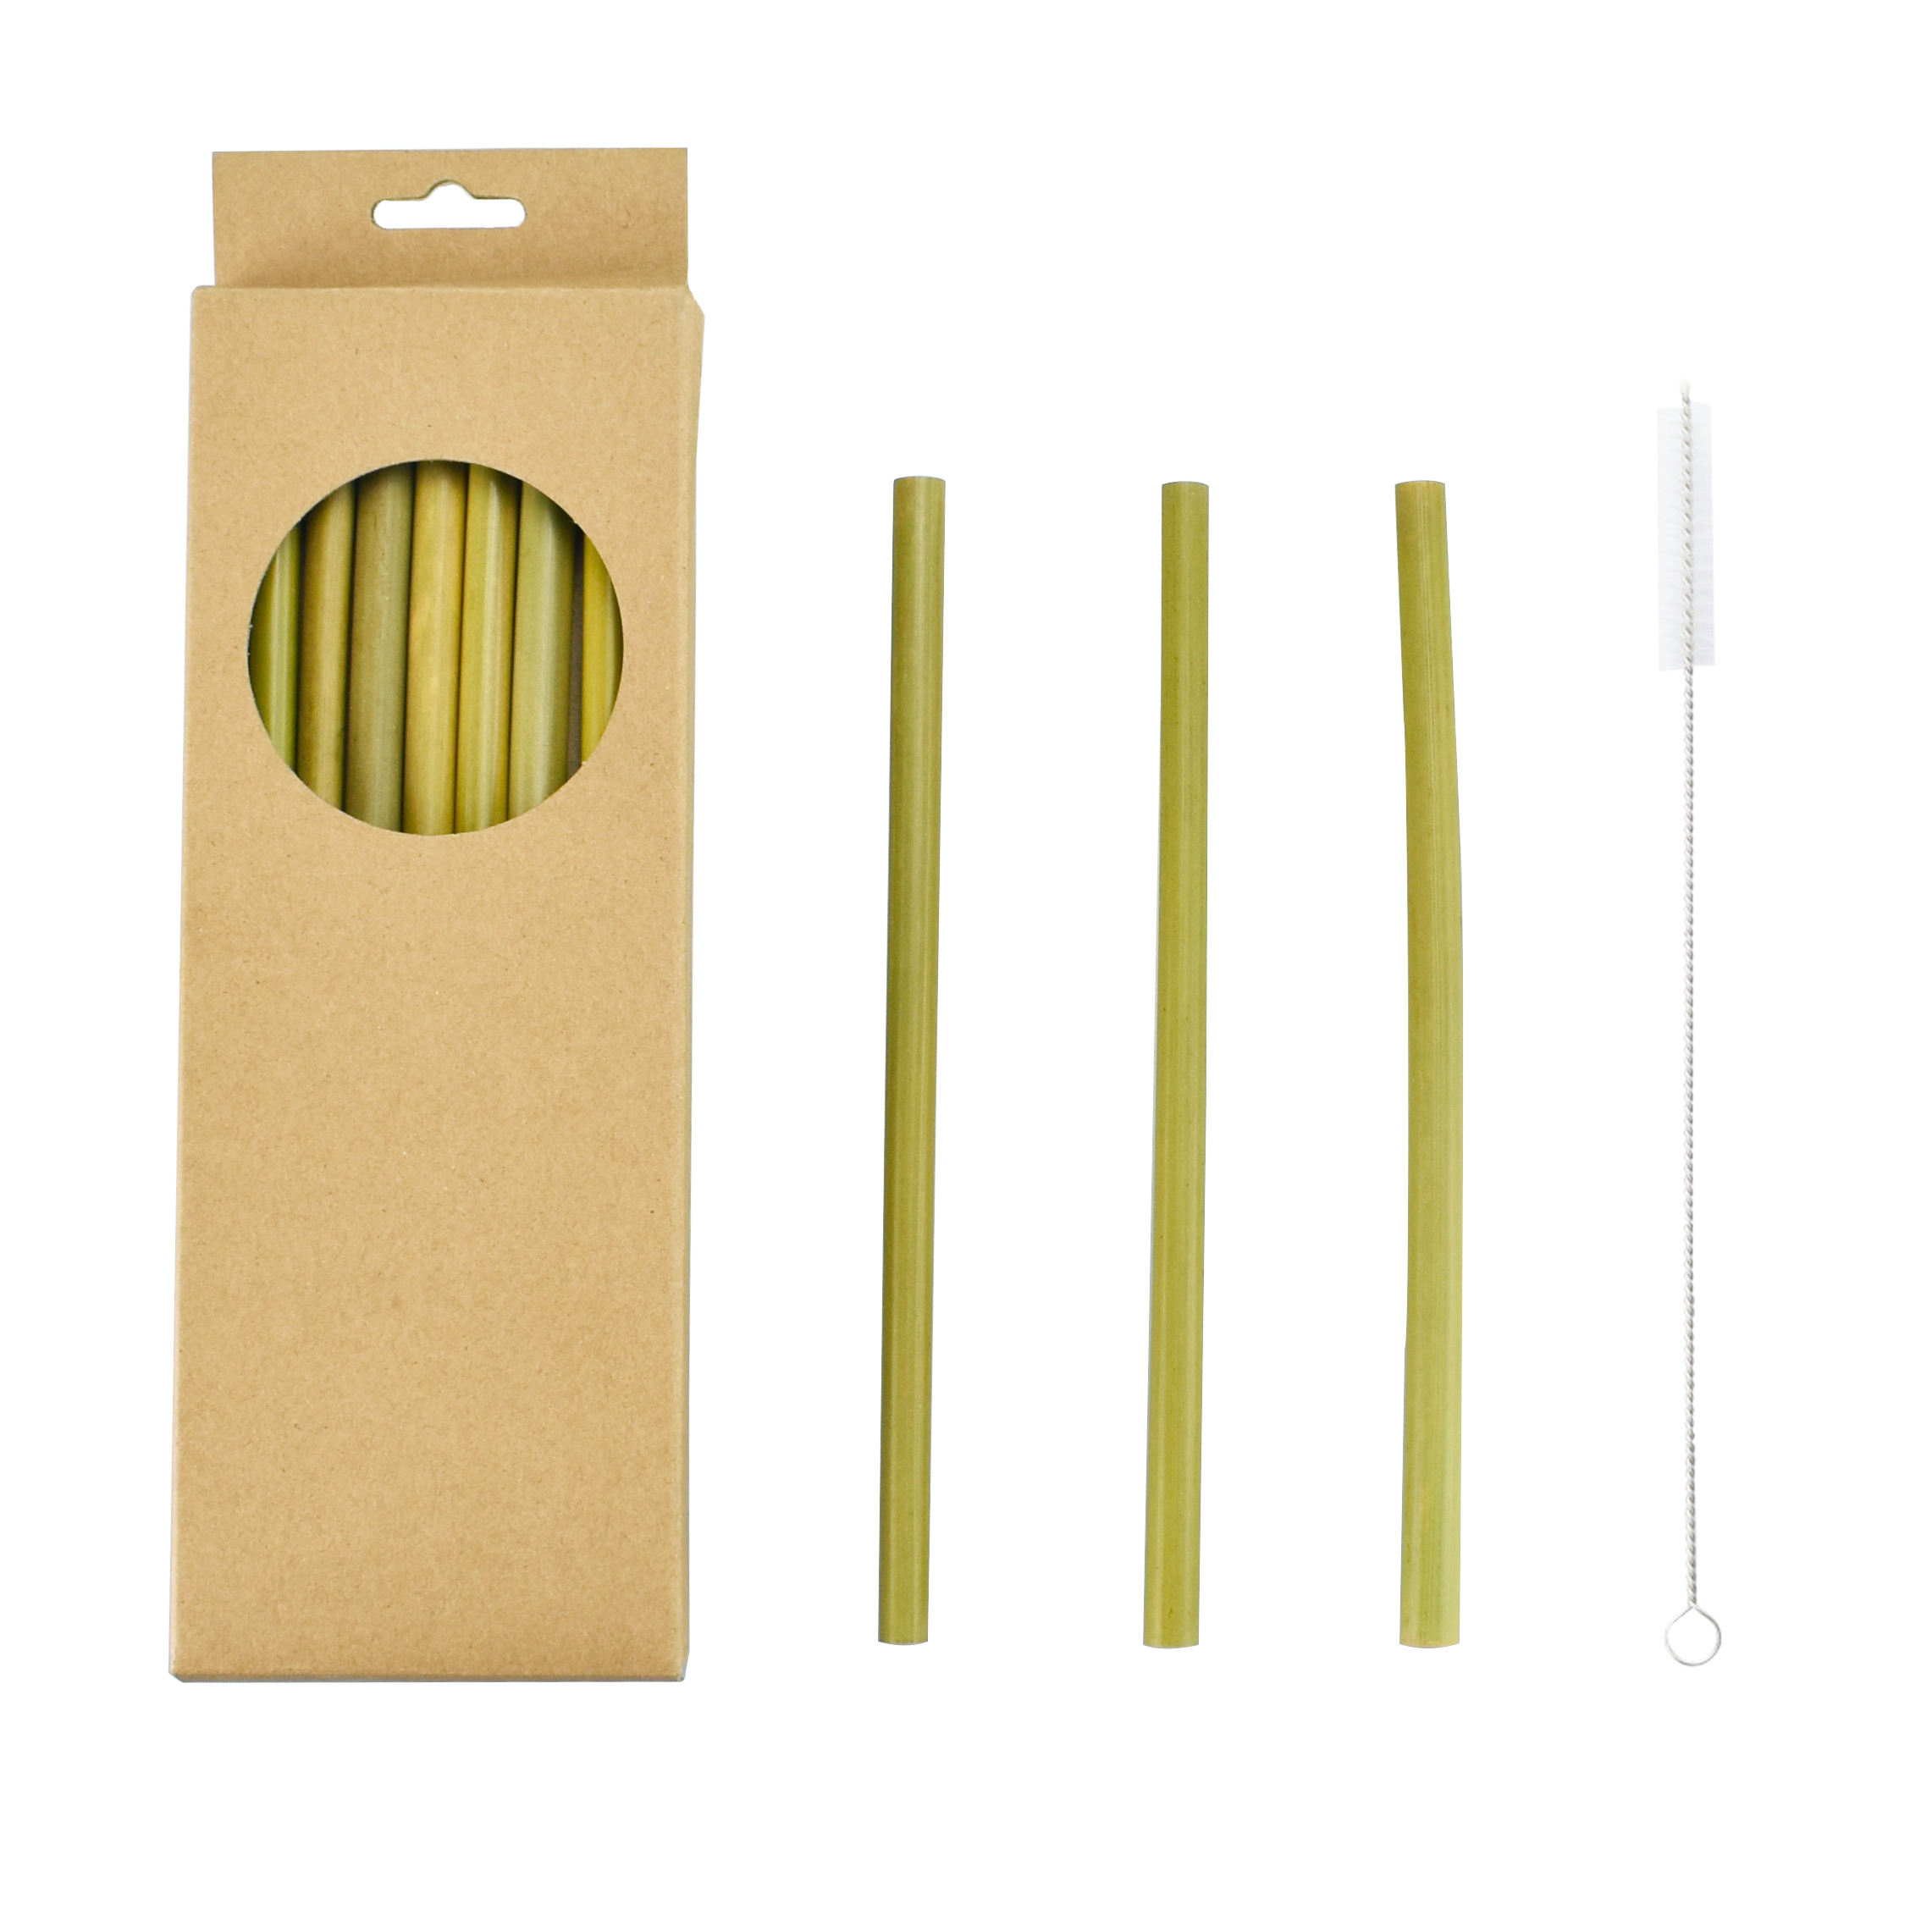 Bamboo Straw Wholesale Reusable FDA Approved 100% Natural Wooden Bamboo Drinking Straw With Box